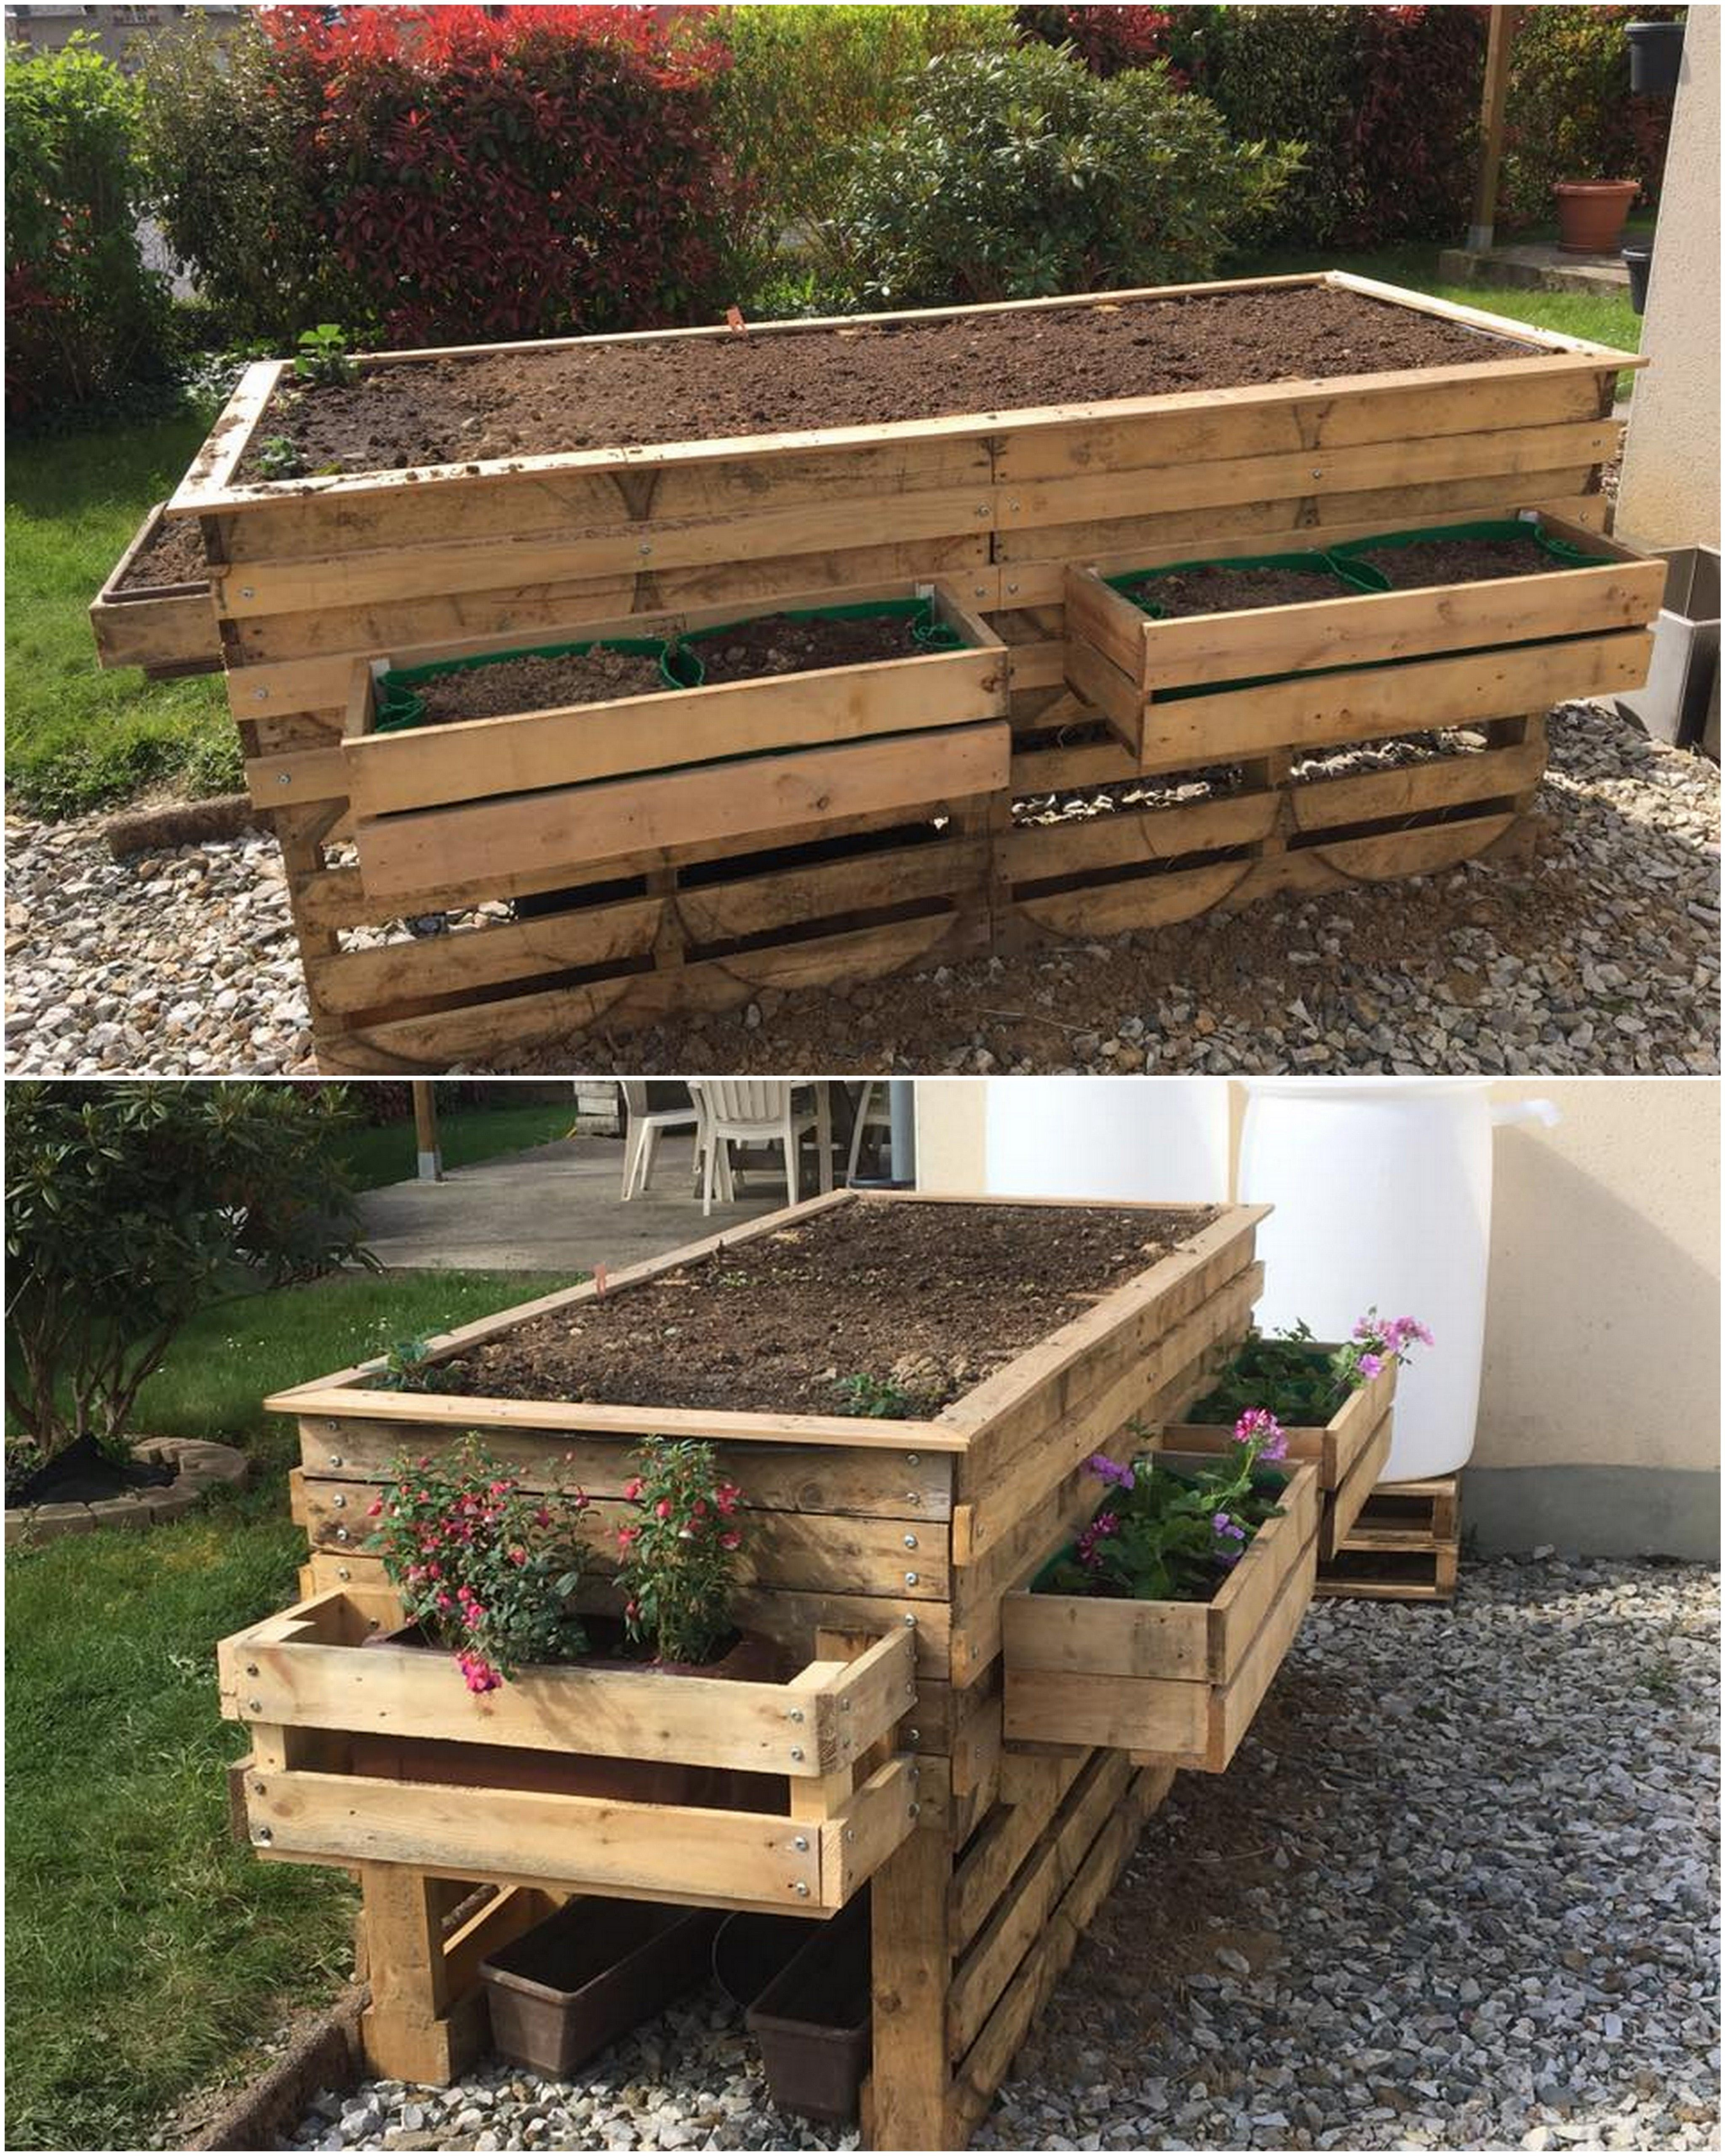 Awesome Diy Recycled Wood Pallet Garden